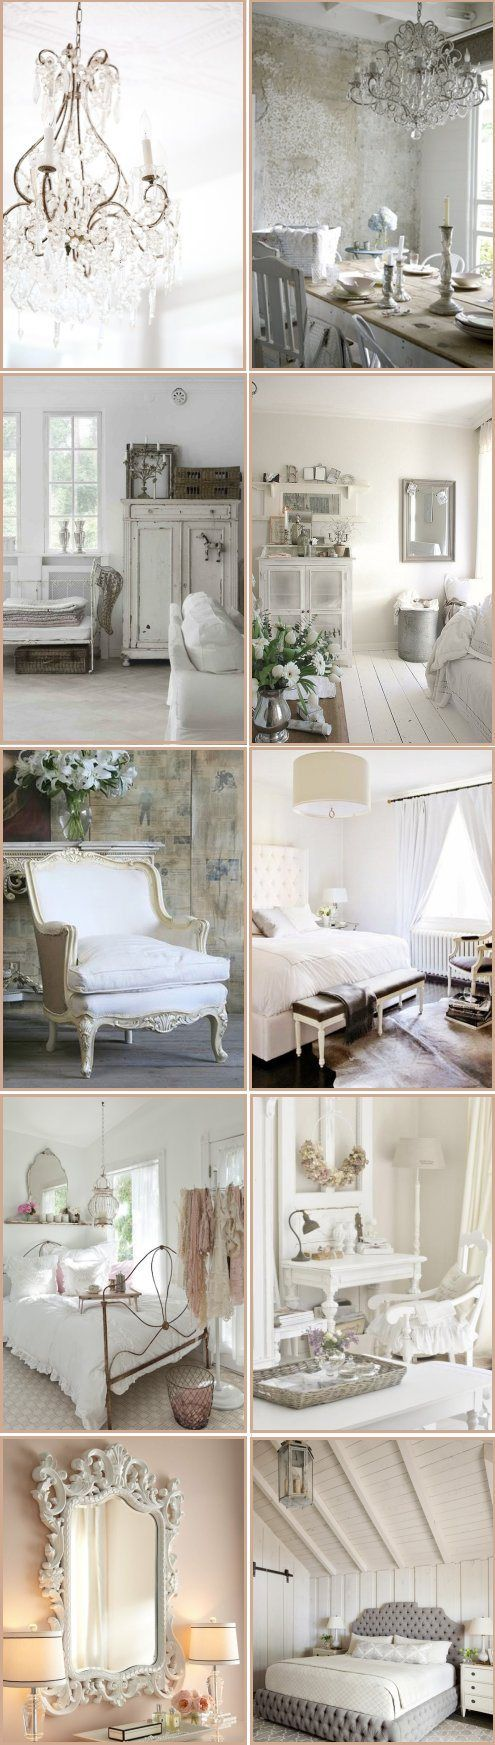 Love white decor